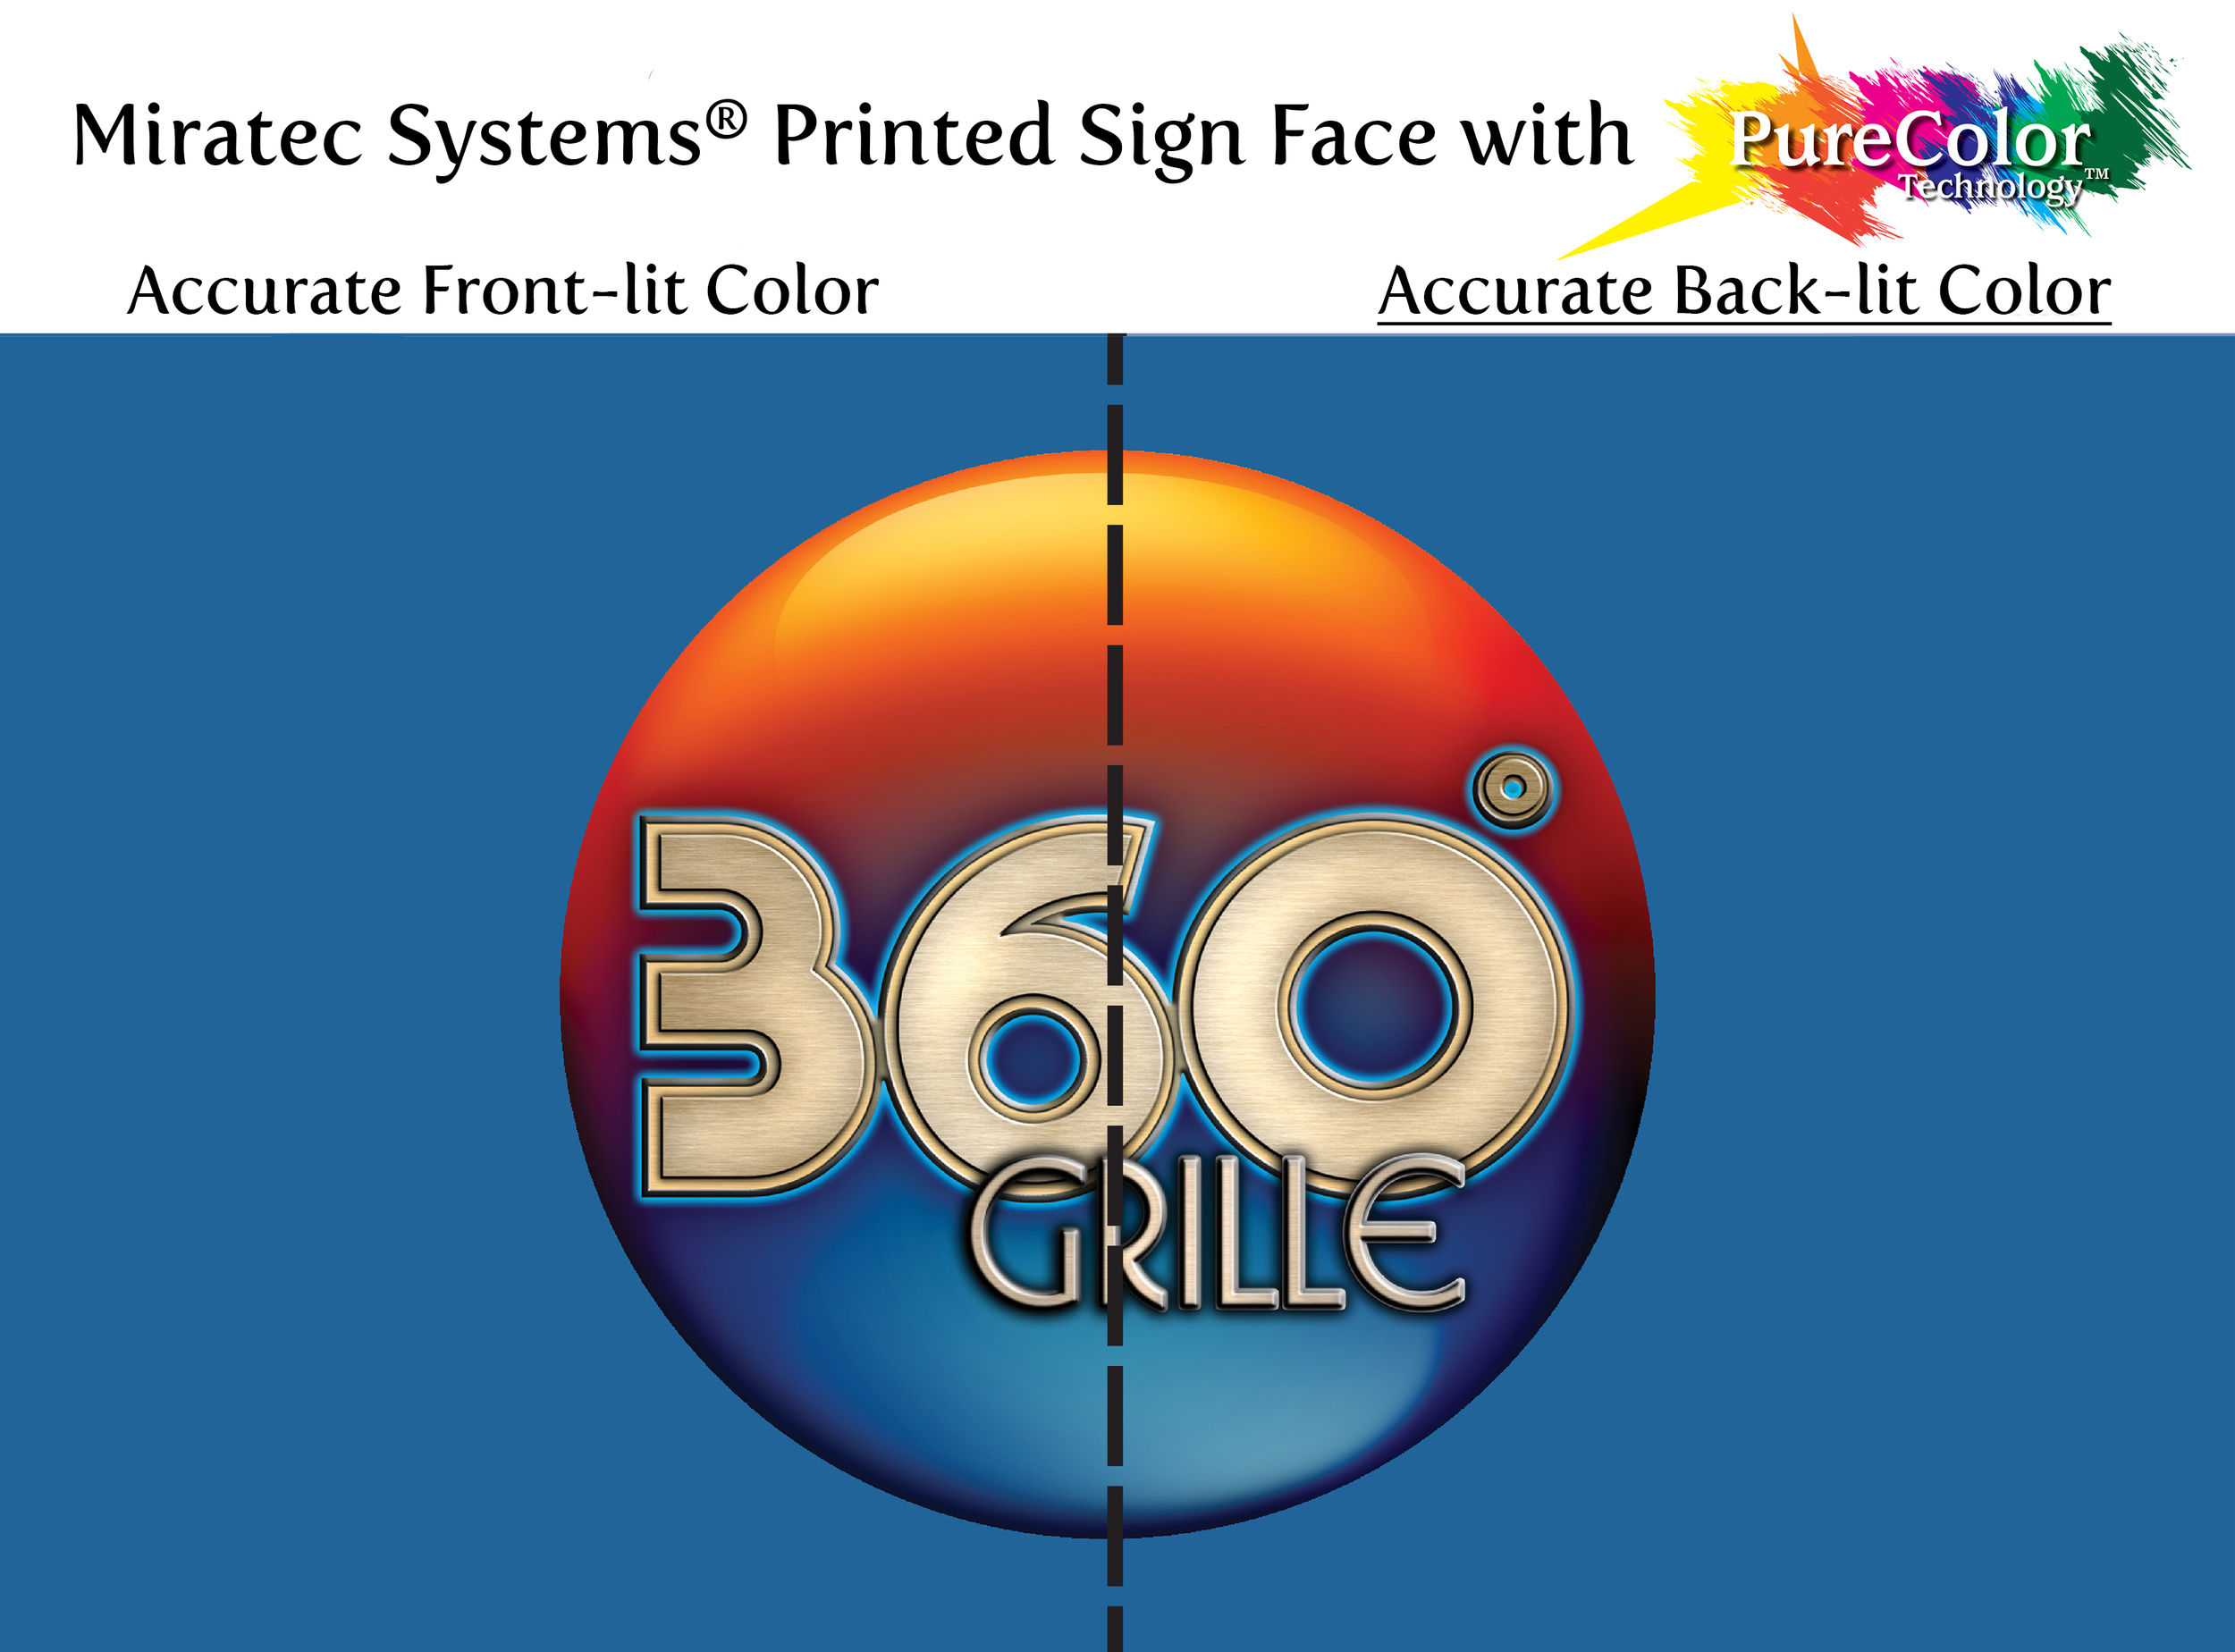 Miratec Systems® Printed Sign Face with PureColor Technology®